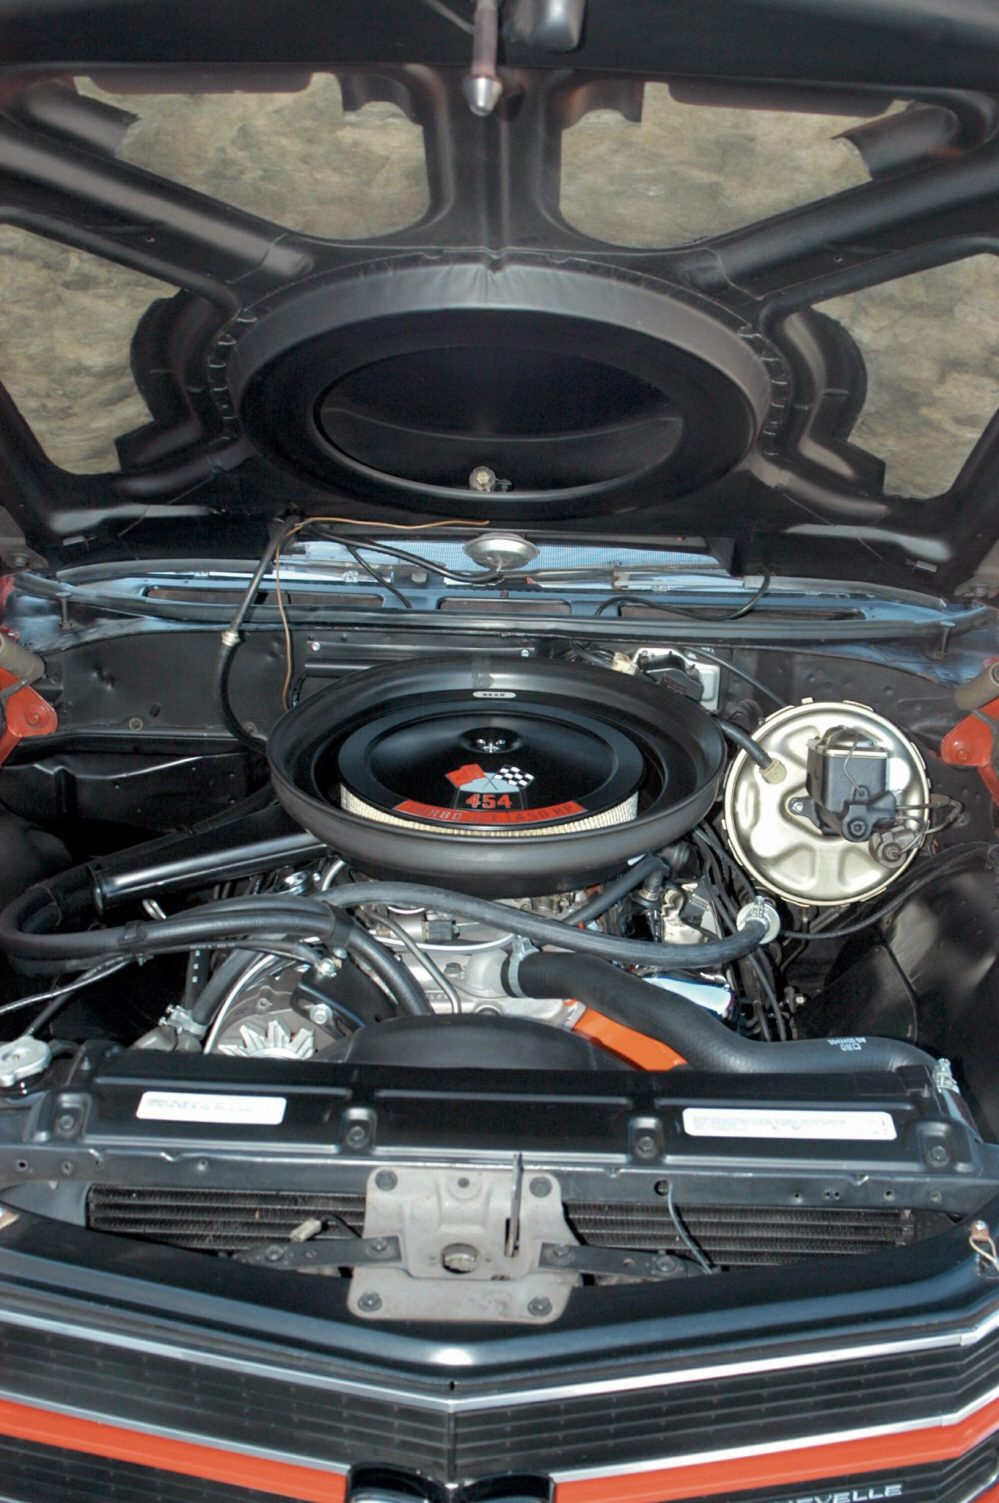 medium resolution of the 450 horsepower ls6 was the most powerful engine offered in 1970 the cowl induction system fed cold outside air to the big 780 cfm holley carburetor